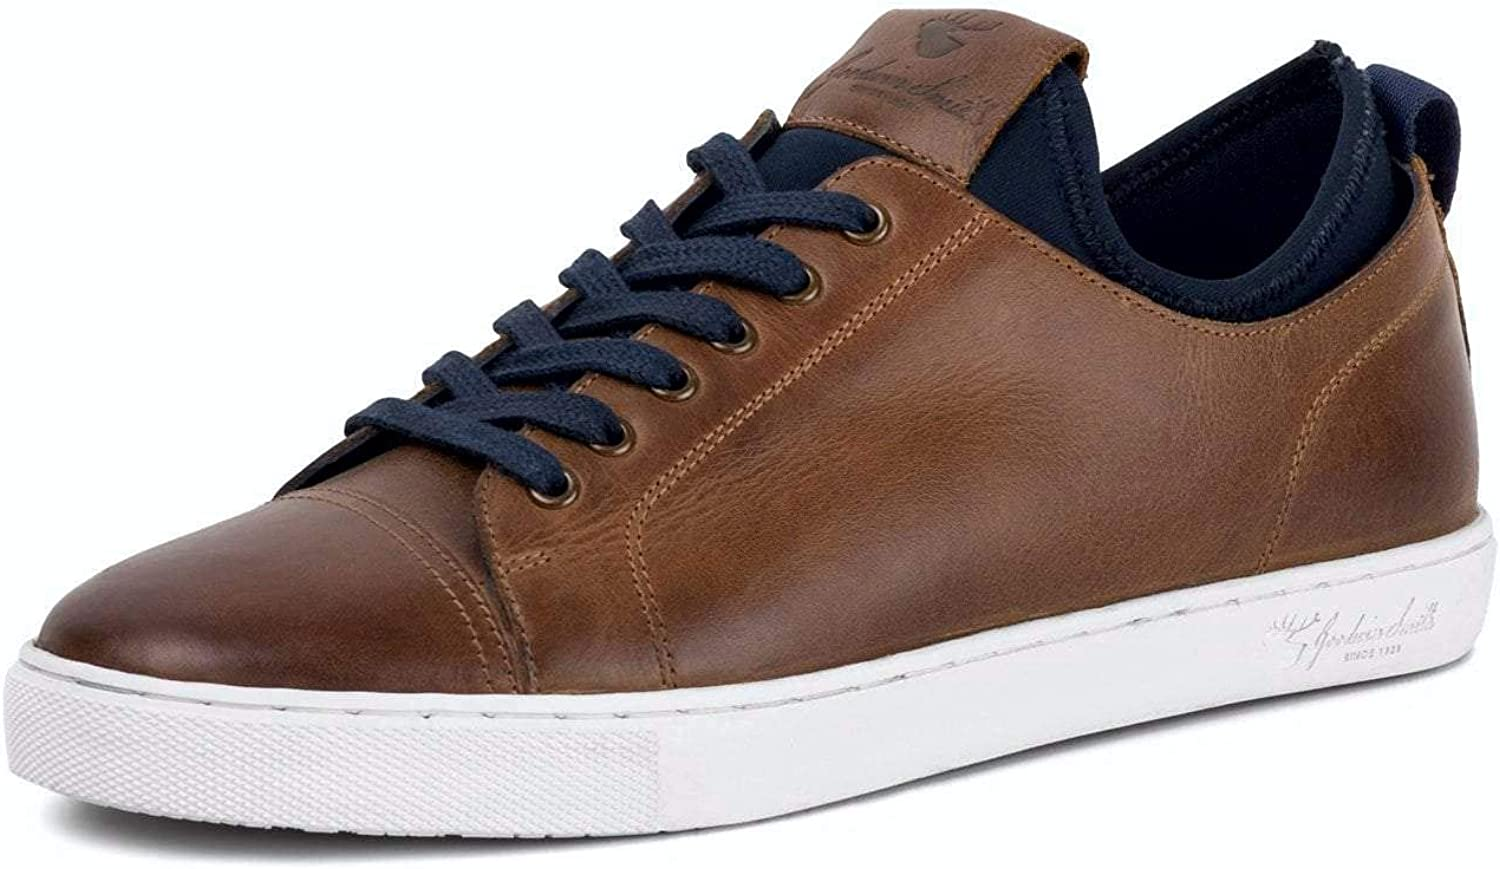 Goodwin Smith Robson Tan Leather Trainers